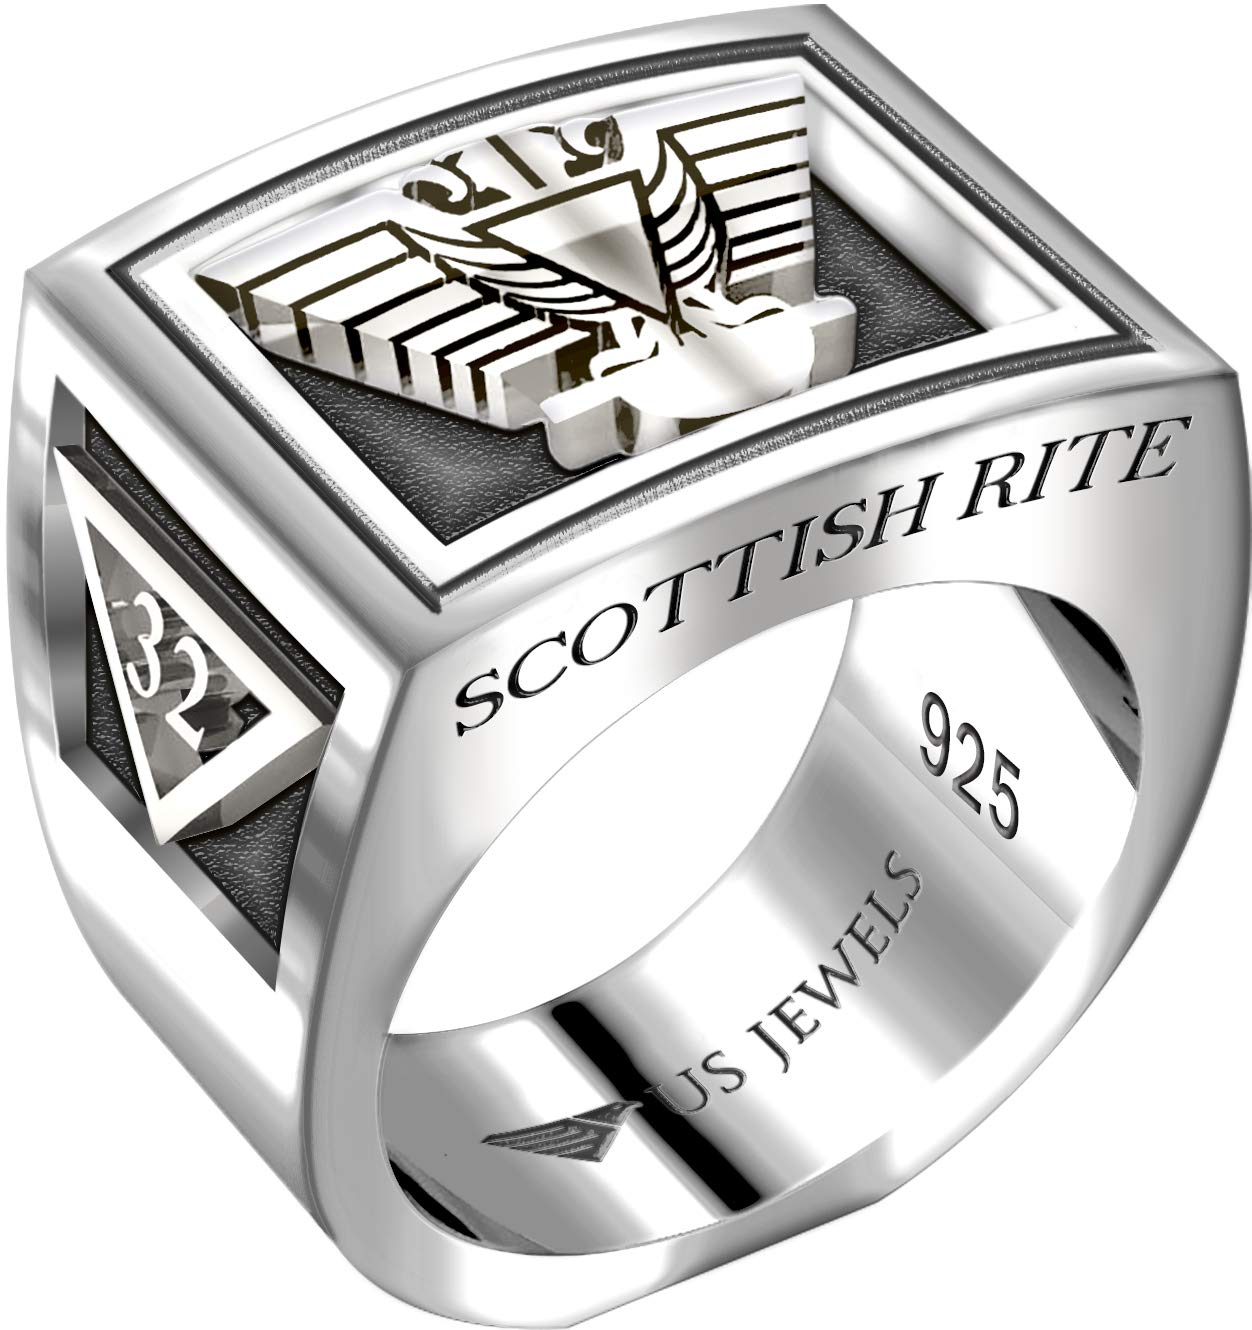 US Jewels And Gems Men's Heavy 0.925 Sterling Silver Freemason Scottish Rite Ring Band, Size 10 by US Jewels And Gems (Image #1)